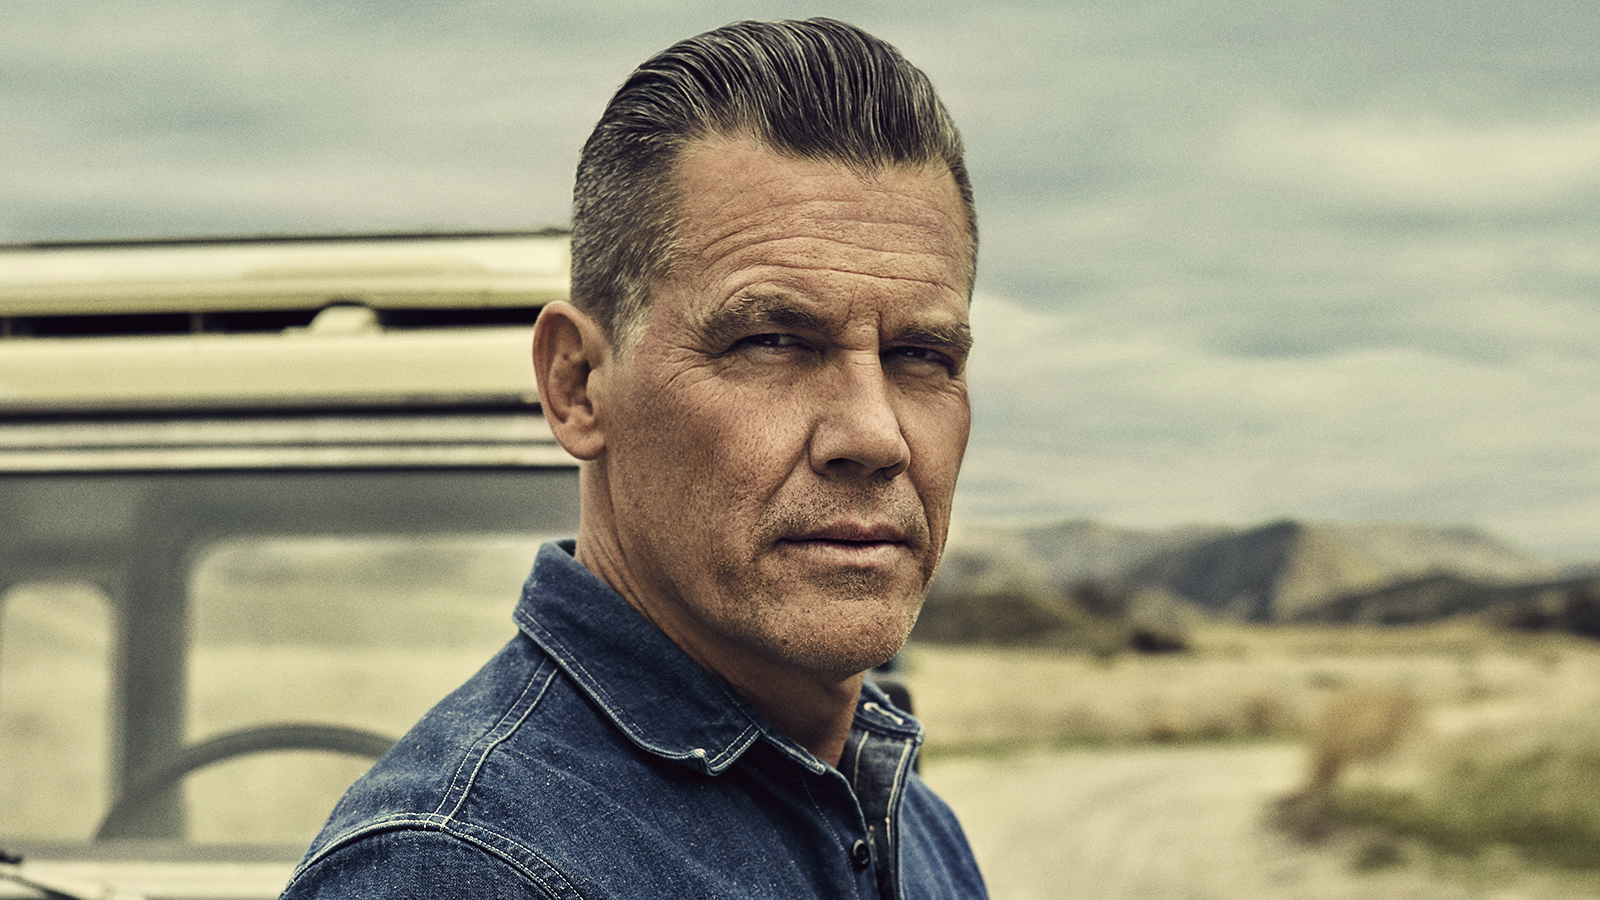 Josh Brolin's Hilarious Instagram Reminds Us All Not to Take the Gym Too Seriously